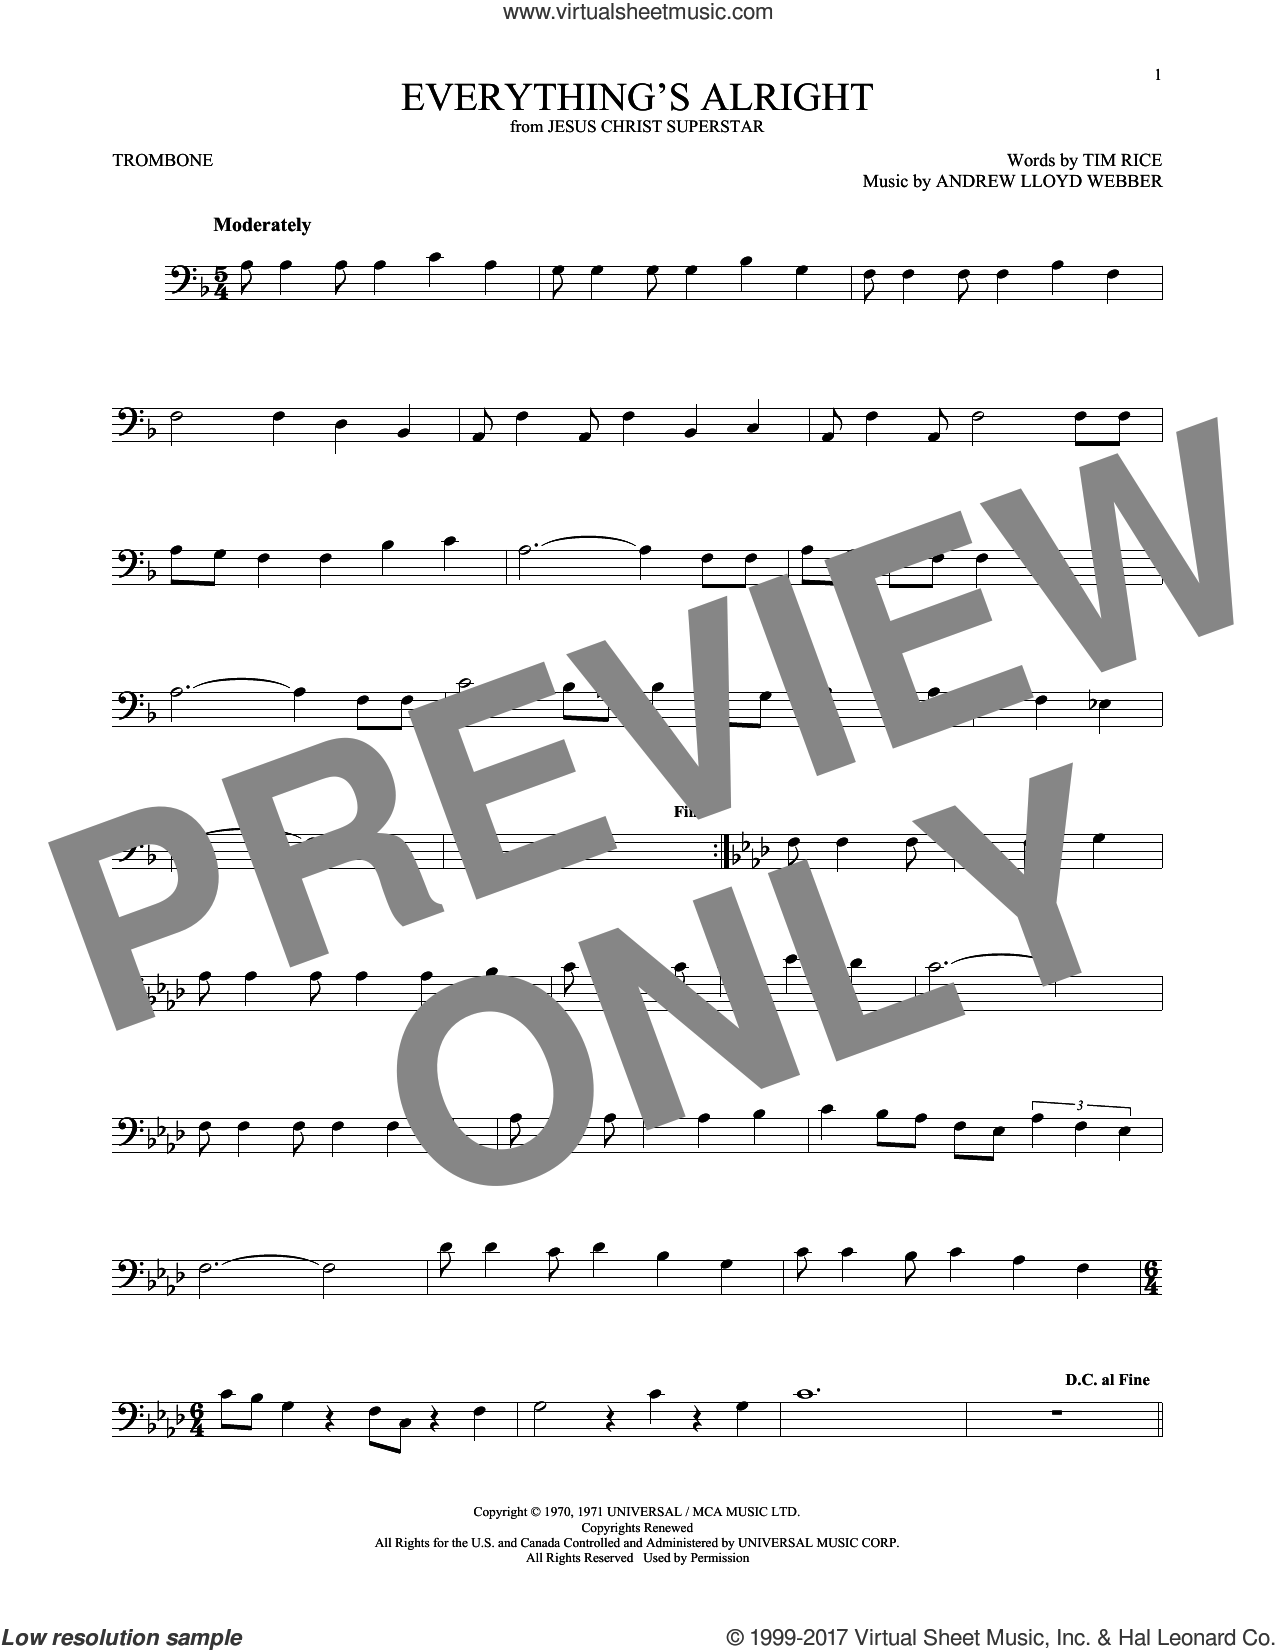 Everything's Alright (from Jesus Christ Superstar) sheet music for trombone solo by Andrew Lloyd Webber, Yvonne Elliman and Tim Rice, intermediate skill level